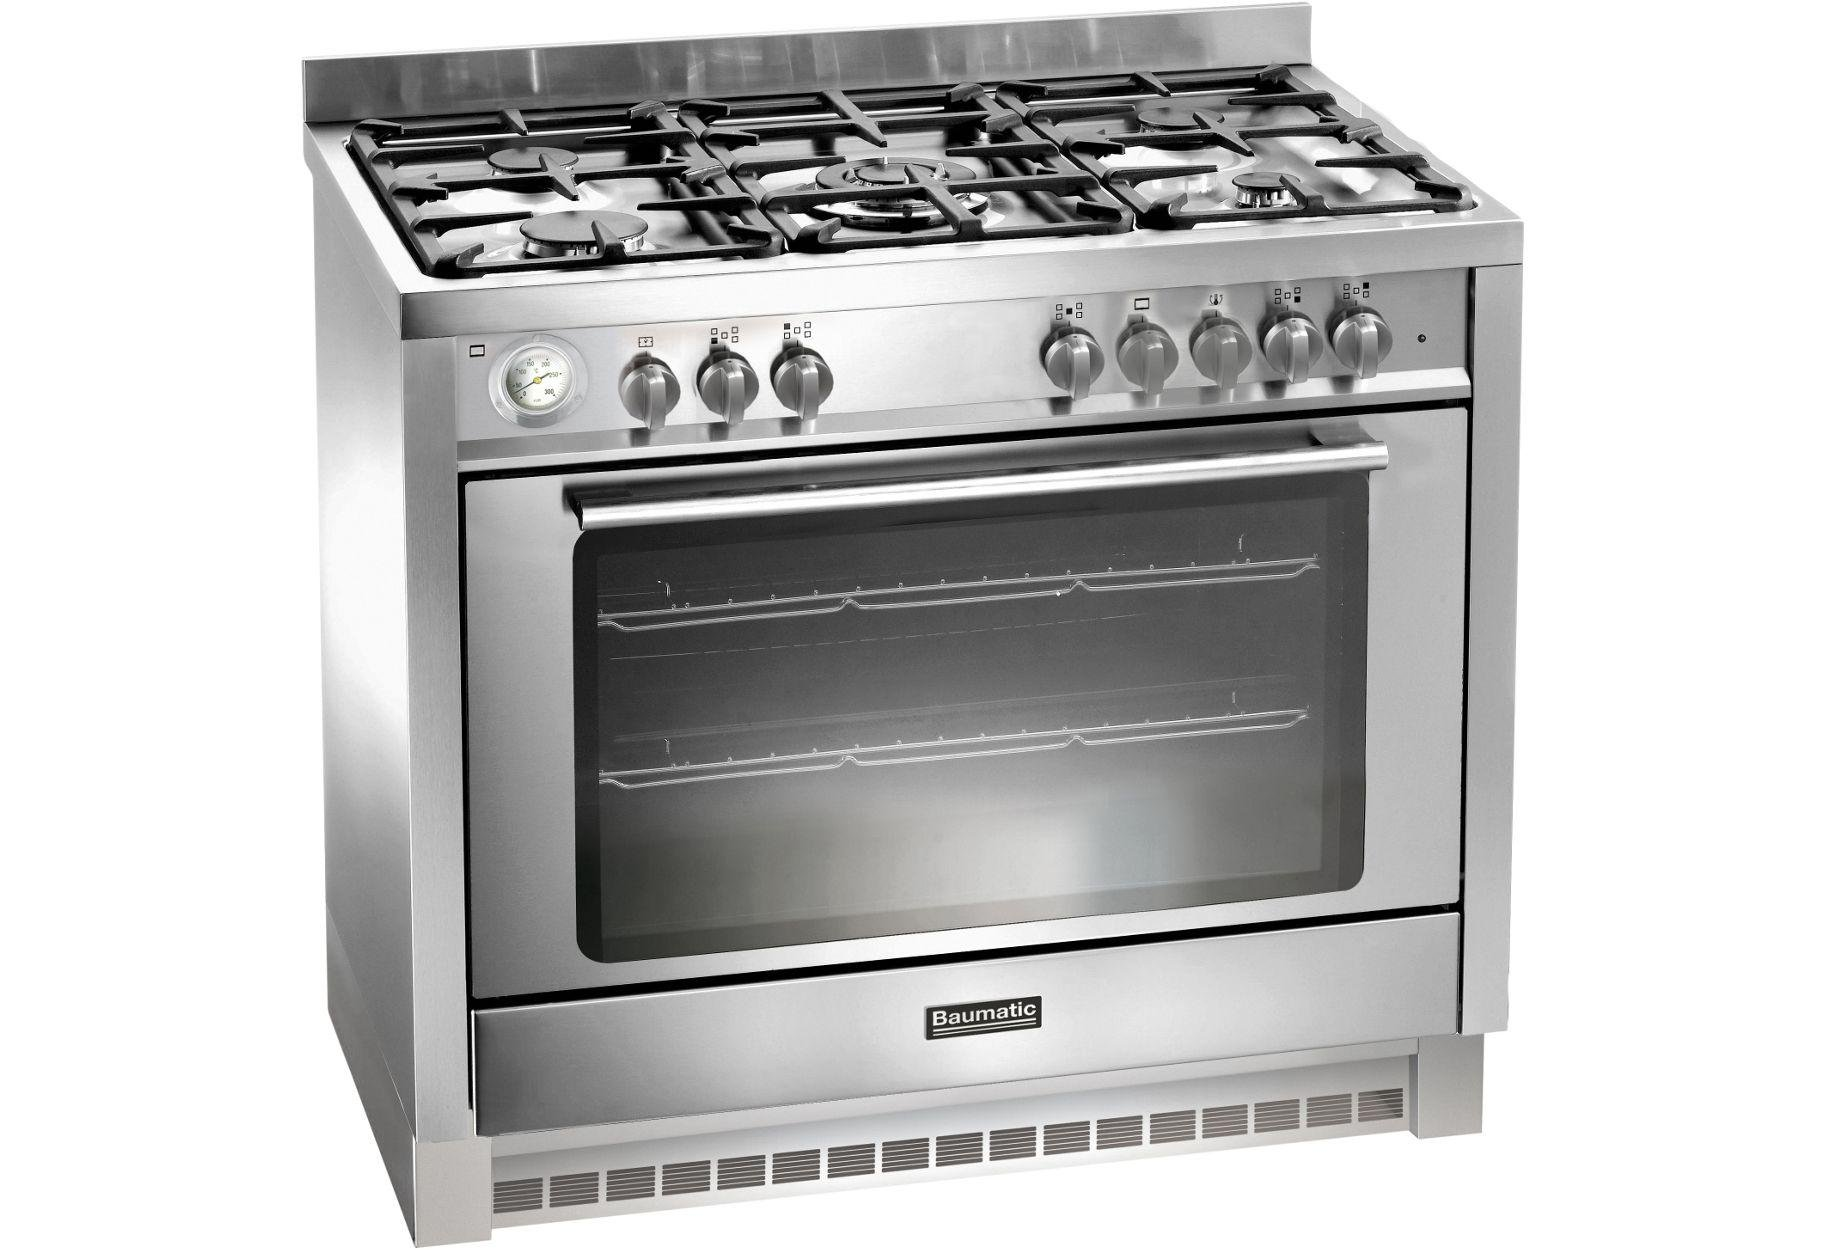 Image of Baumatic BCD905 Dual Fuel Range Cooker - Stainless Steel.